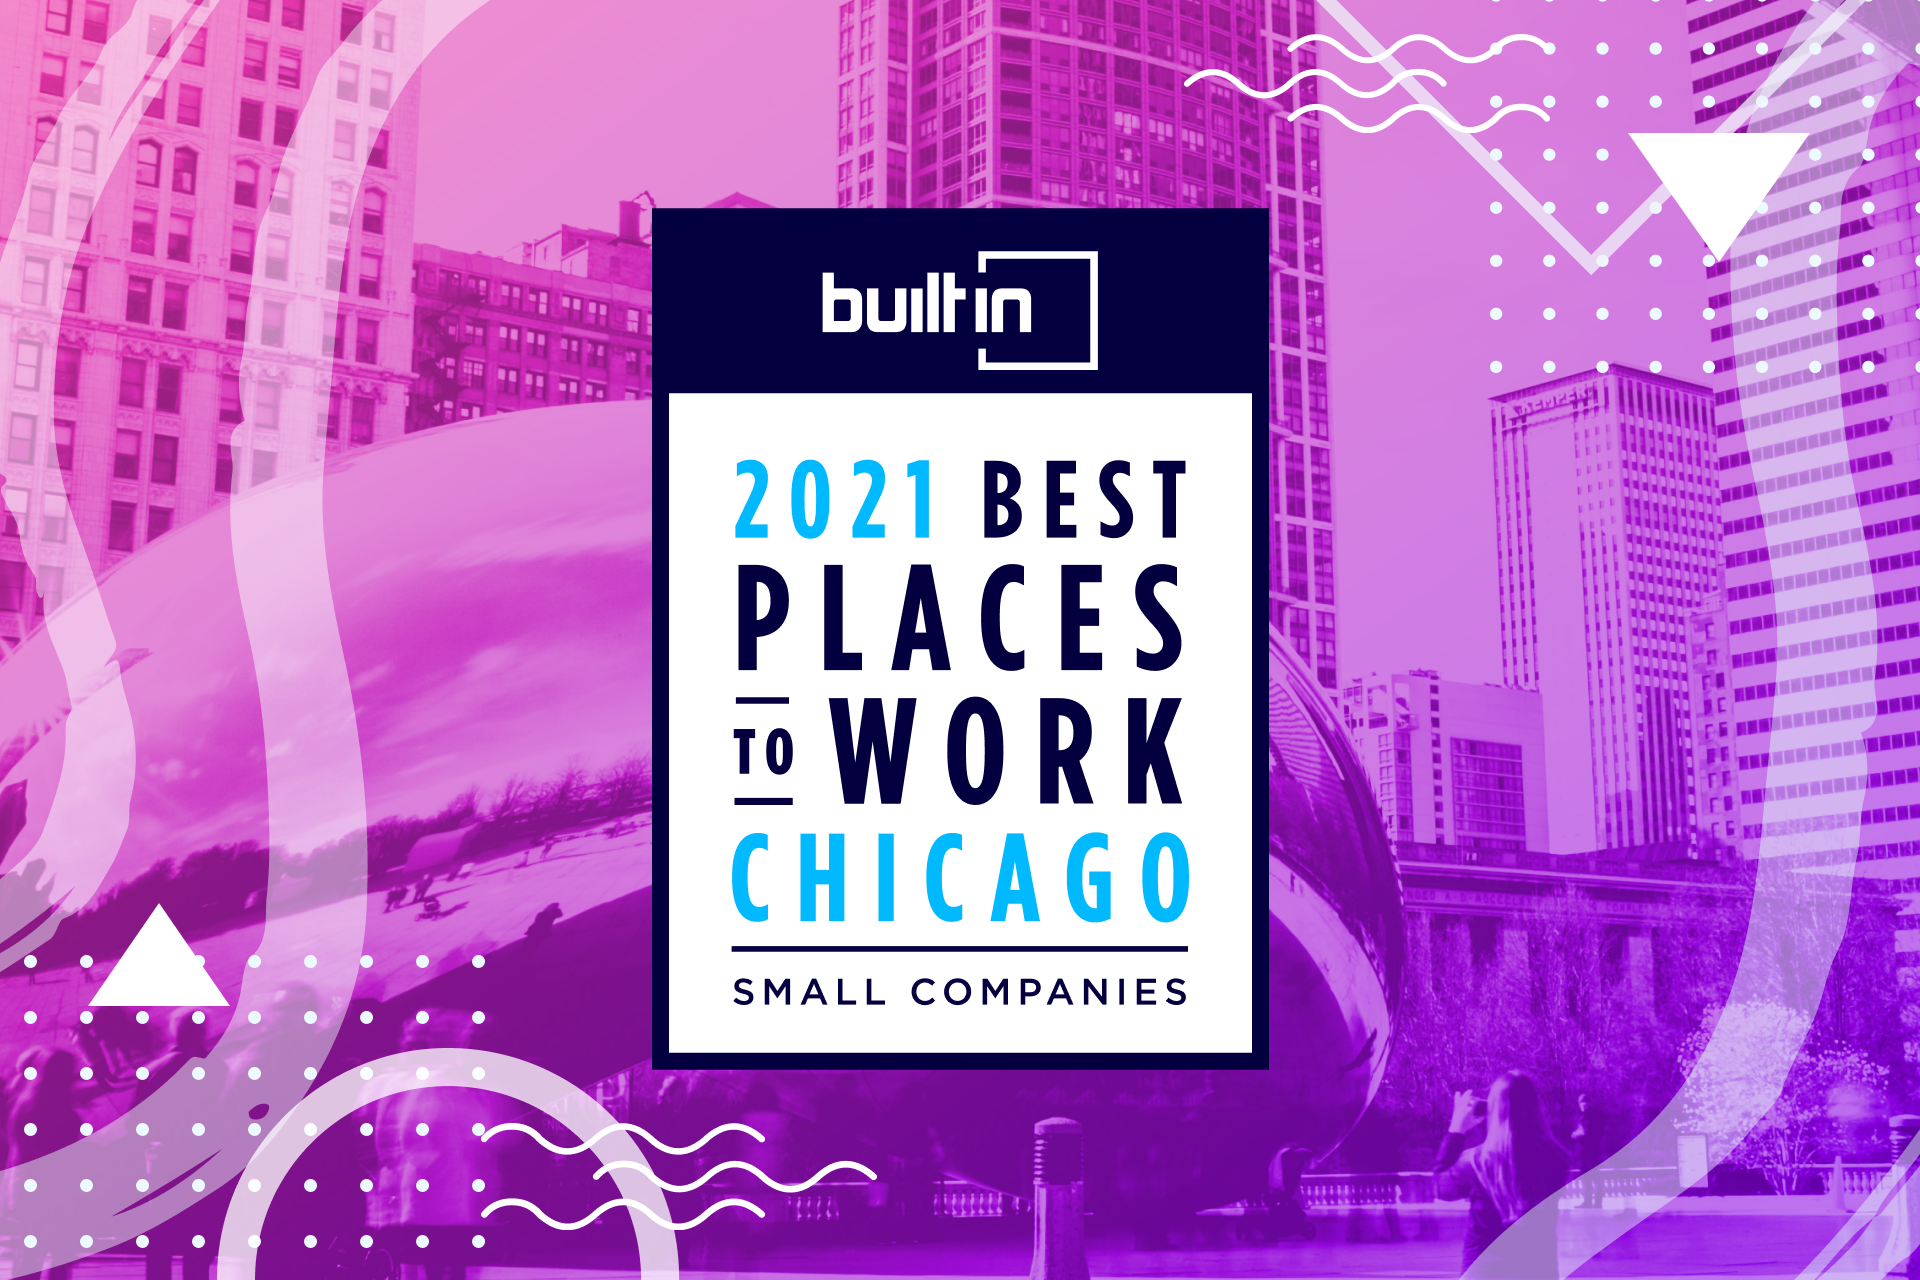 Built In Honors ClearCut Analytics in Its Esteemed 2021 Best Places To Work Awards